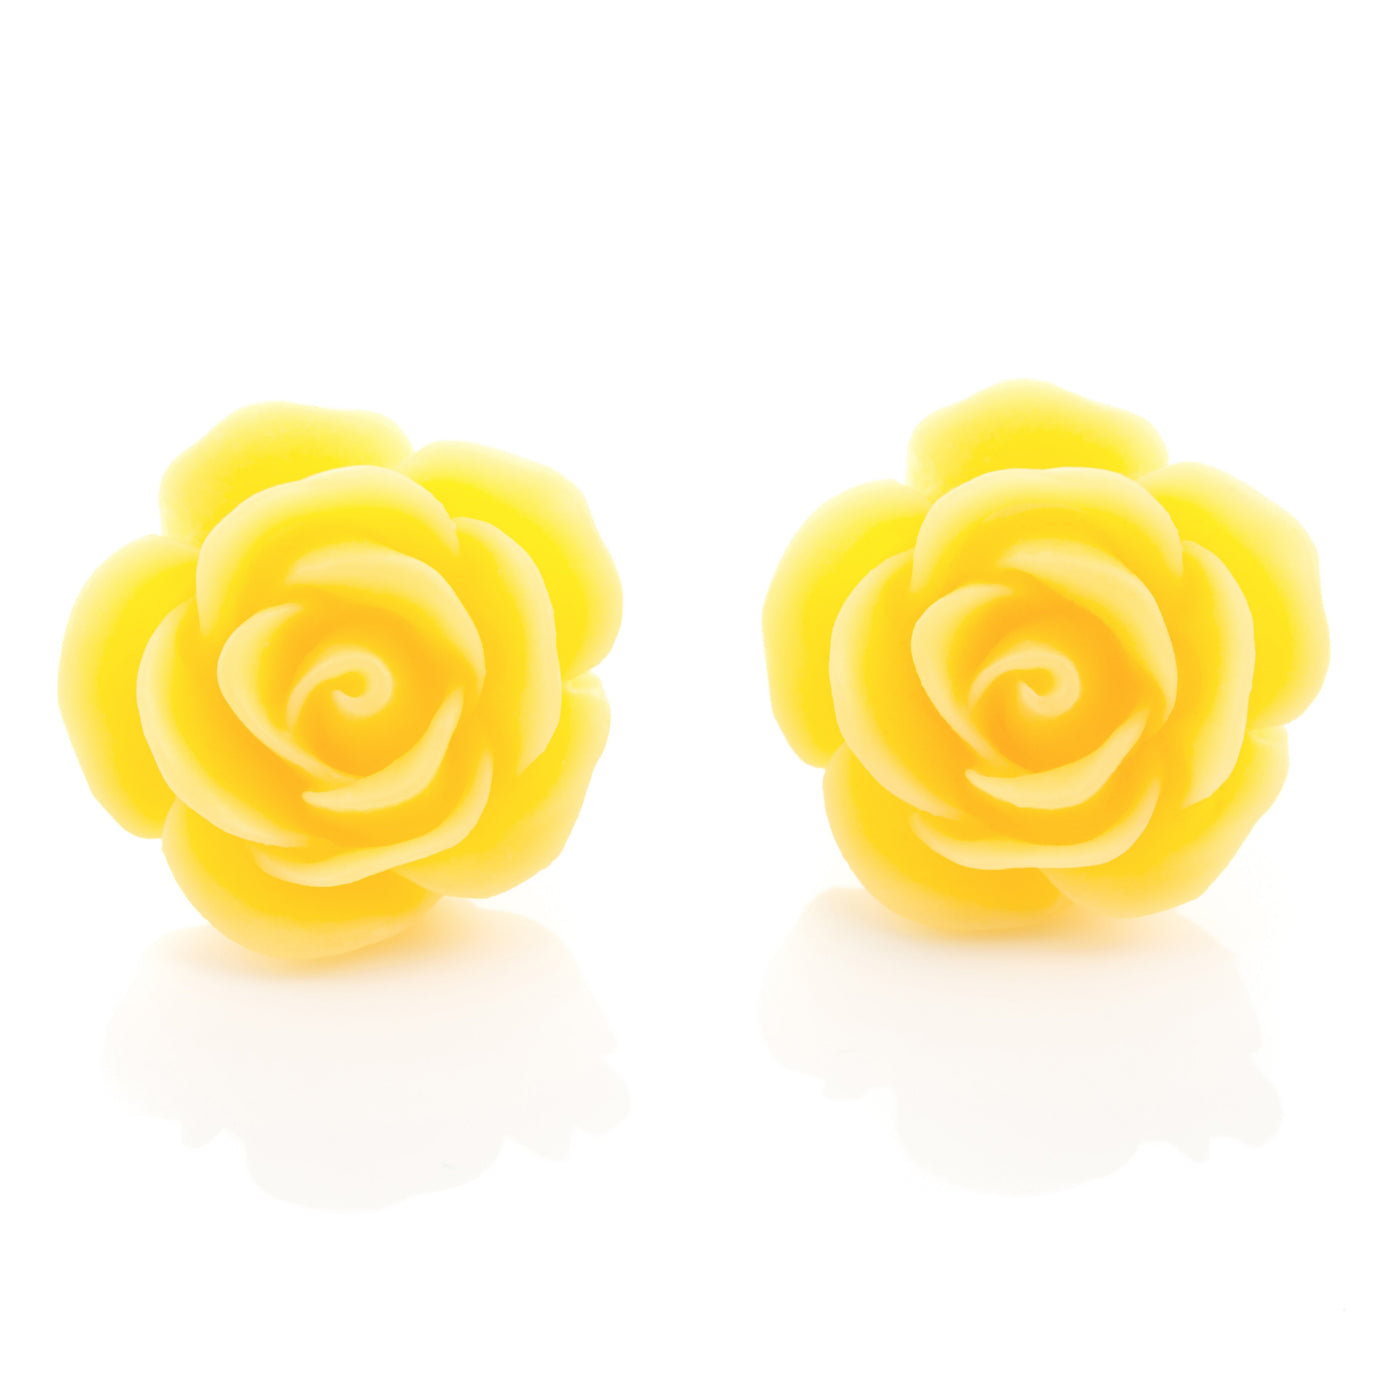 1950s Style Rose Earrings Dollydagger